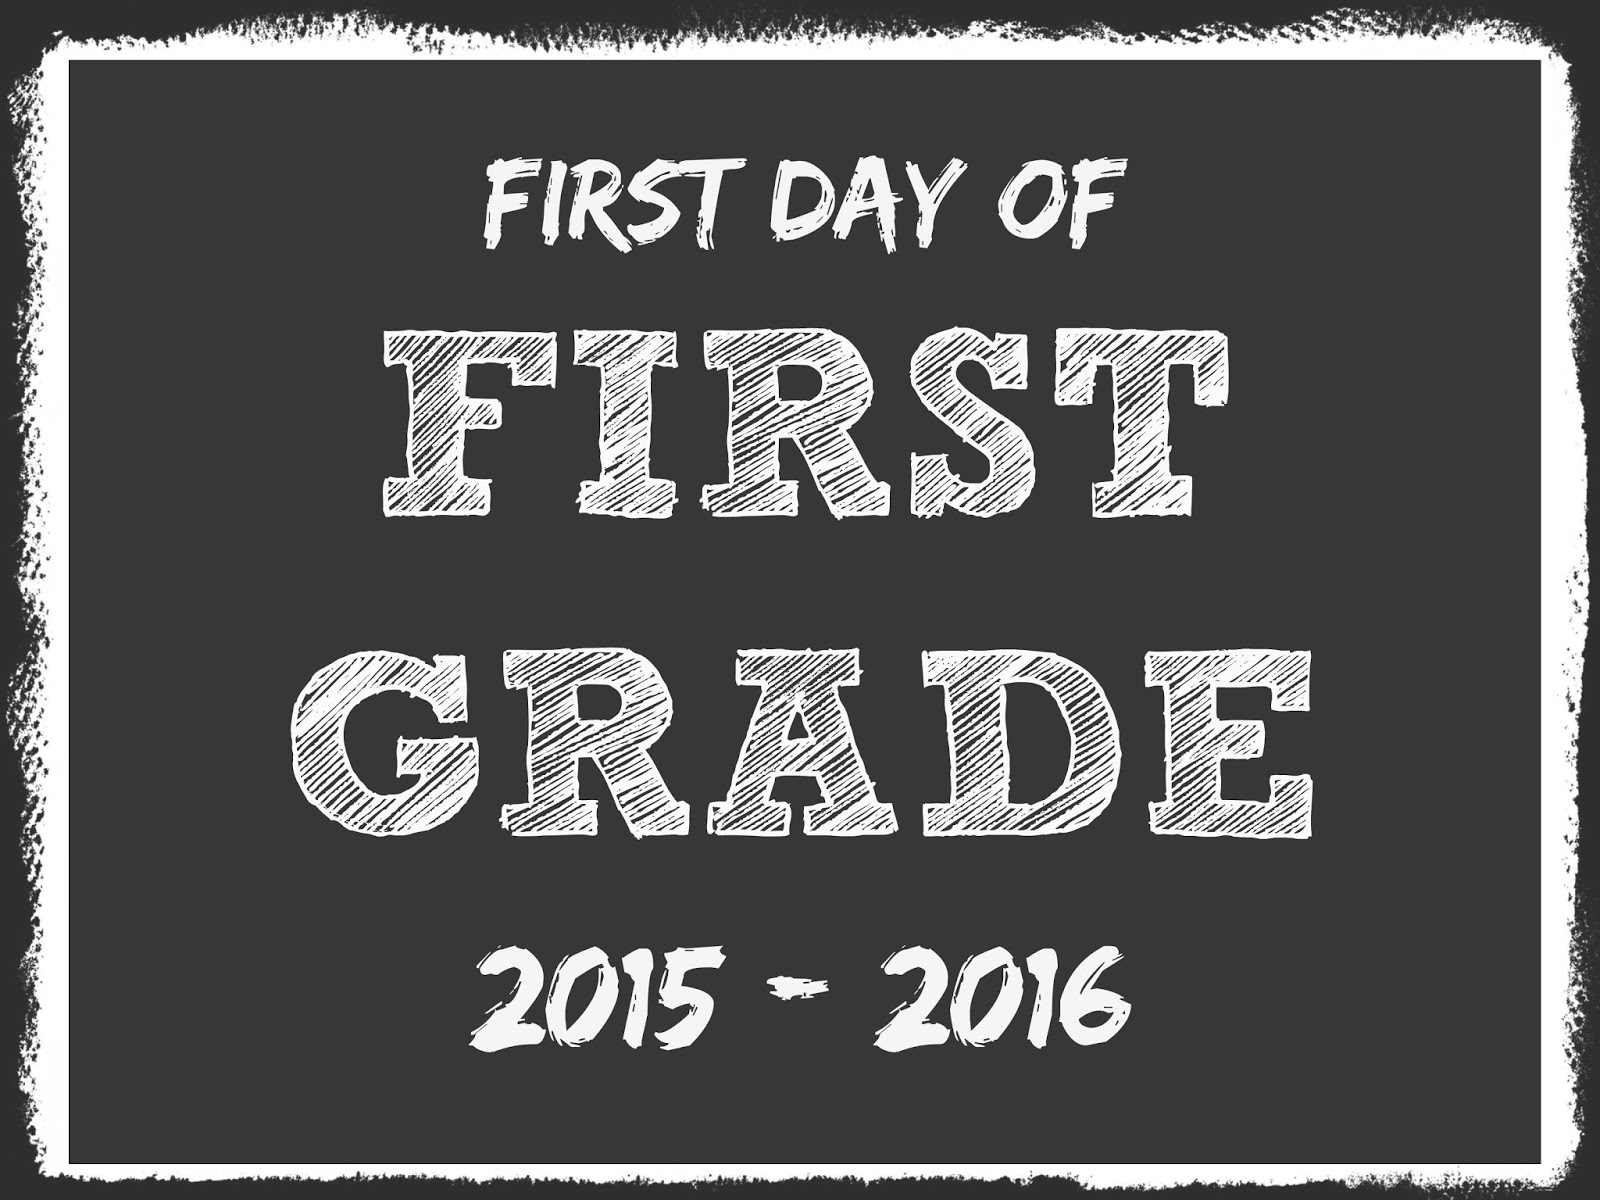 first day of school sign template - first day of school printable template free first day of